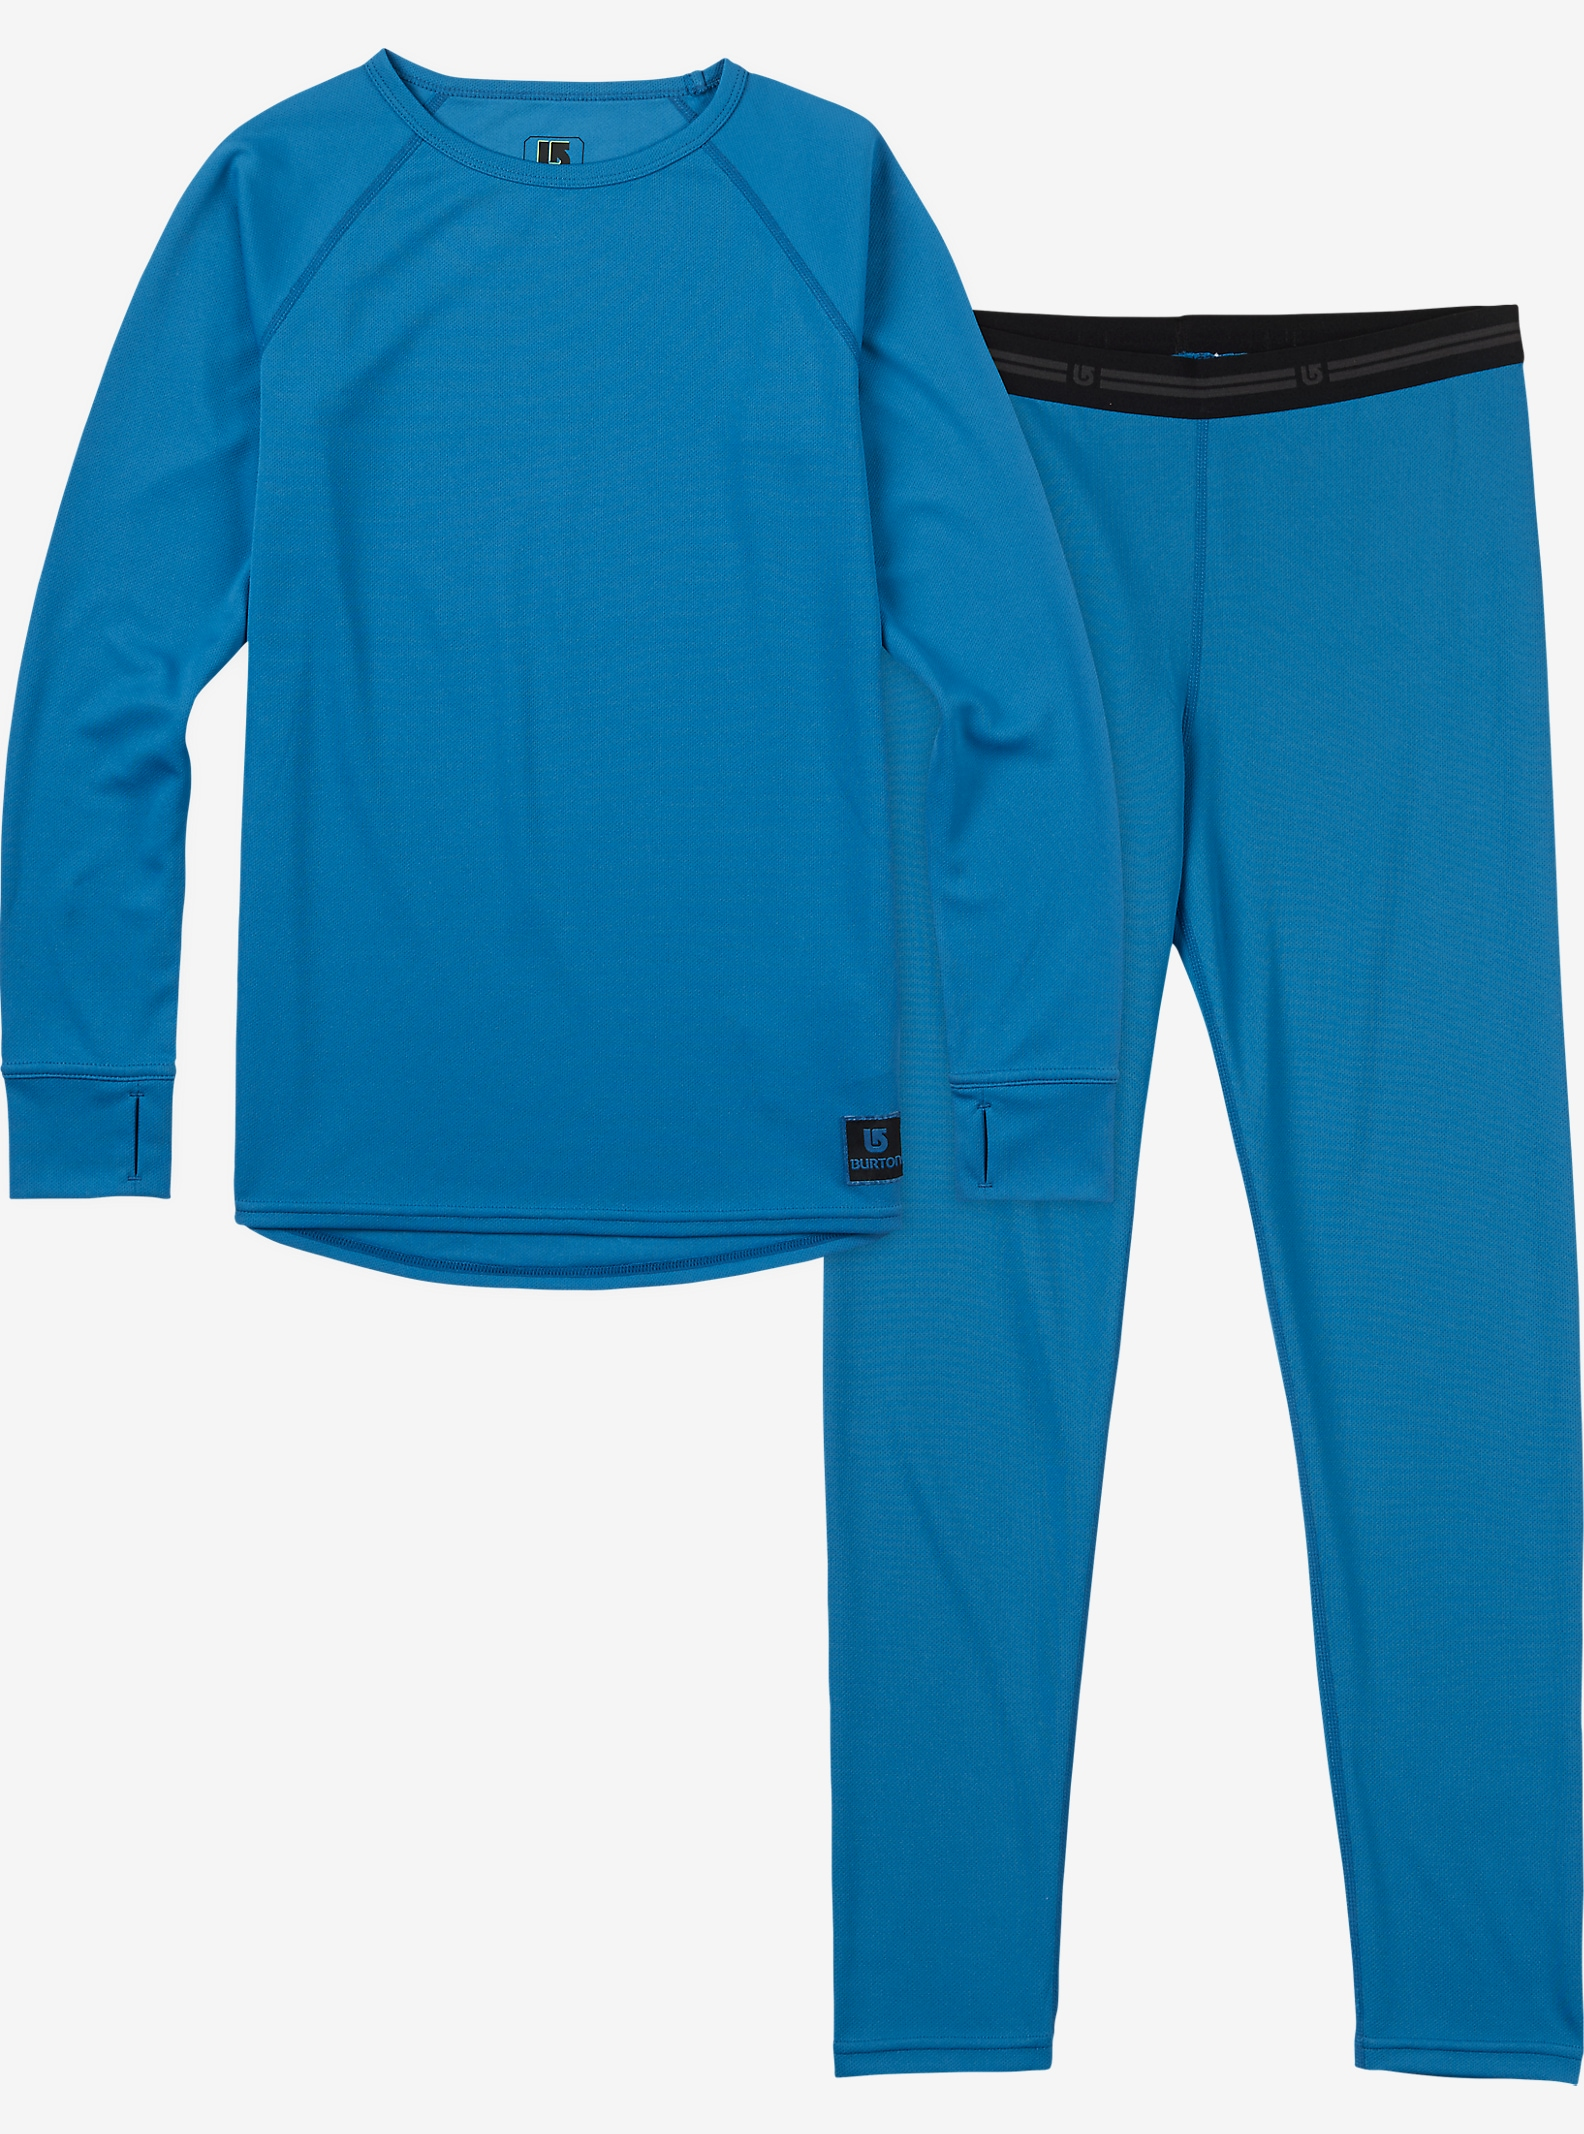 Burton Kids' Lightweight Base Layer Set shown in Glacier Blue